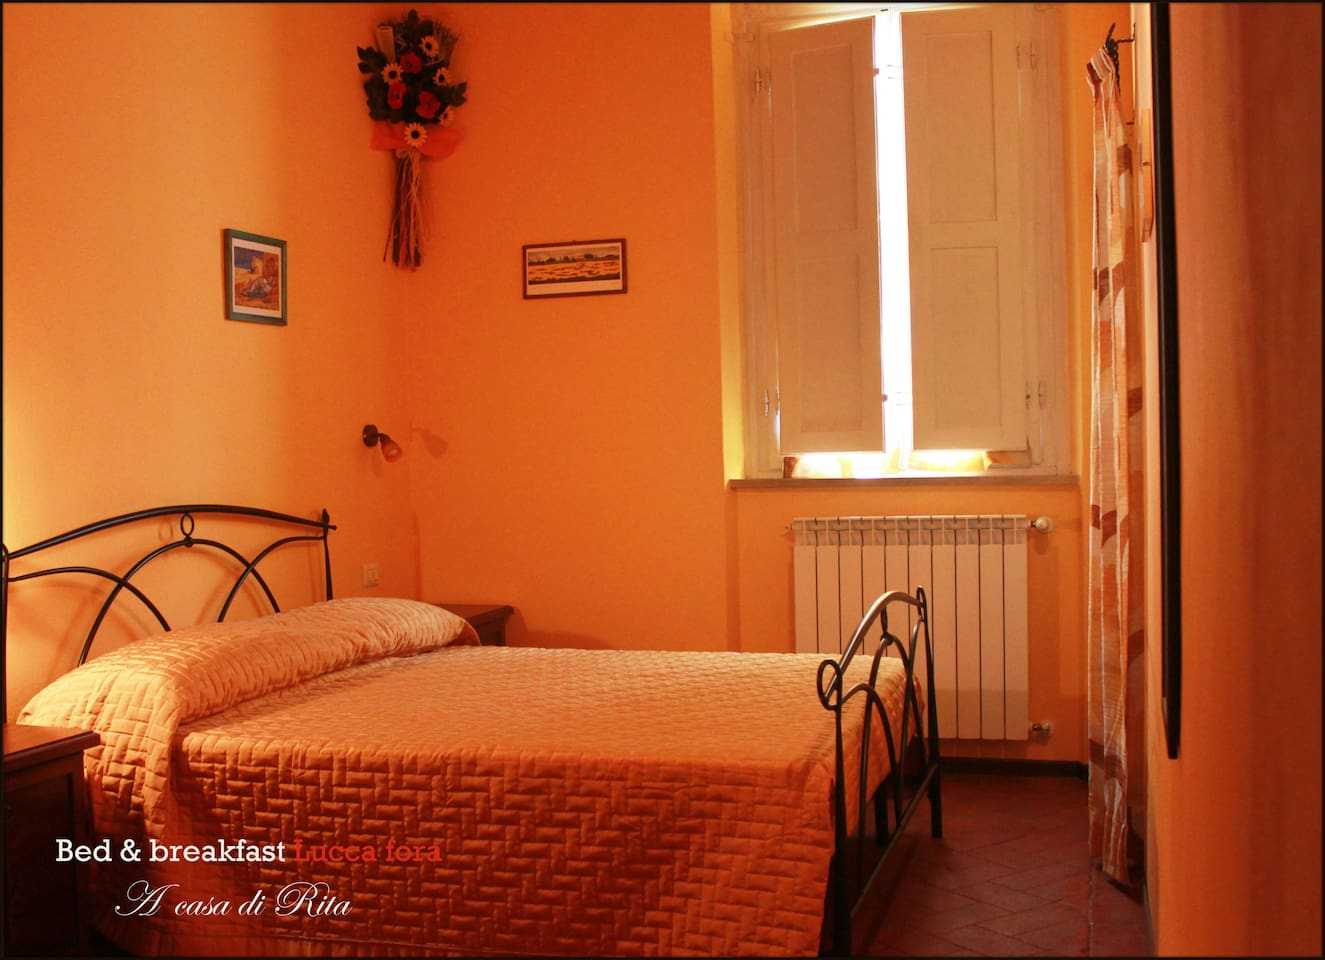 Caratteristico Bed and Breakfast !